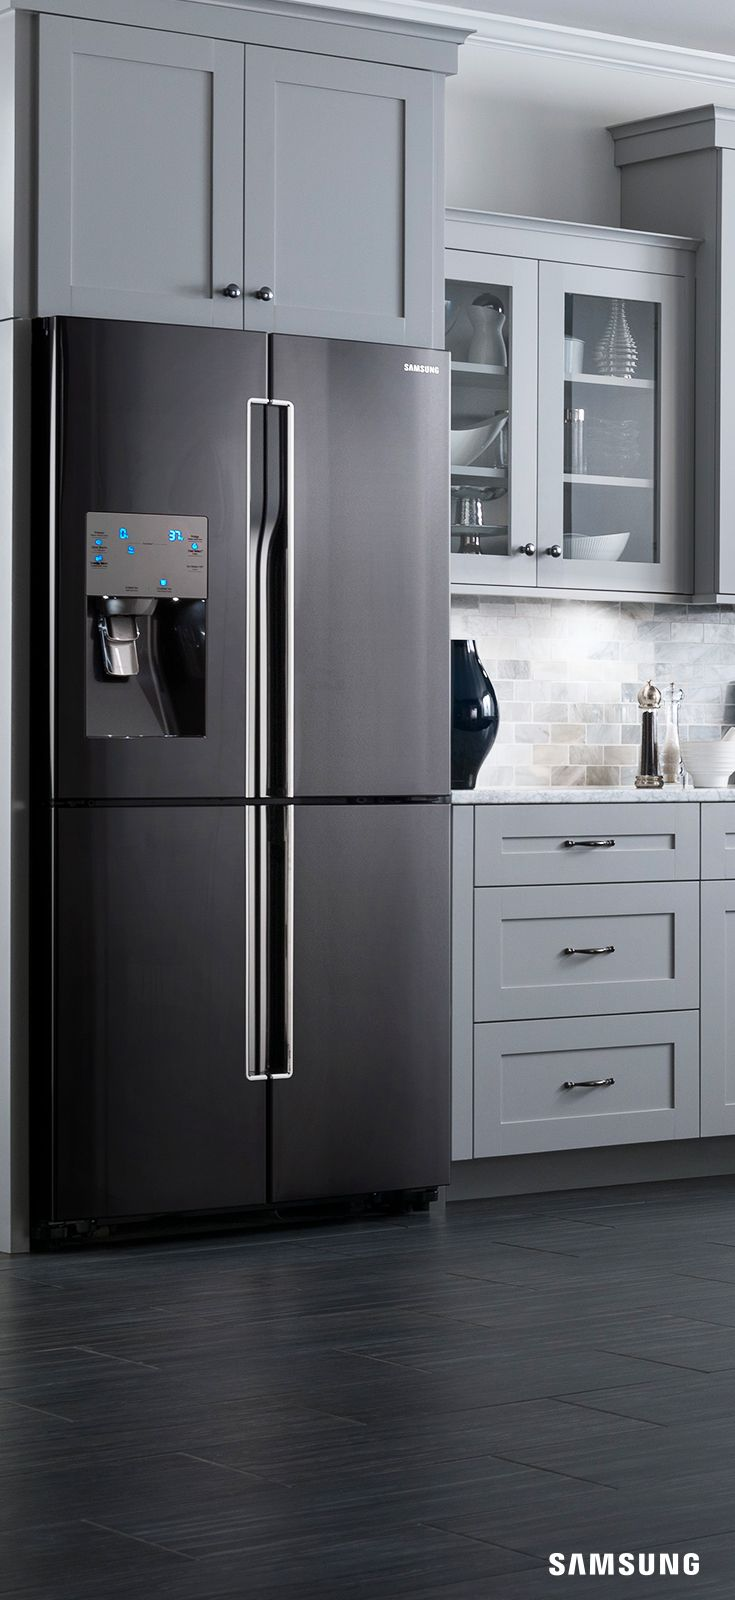 The Next Thing In Kitchen Inspiration Is The Samsung Black